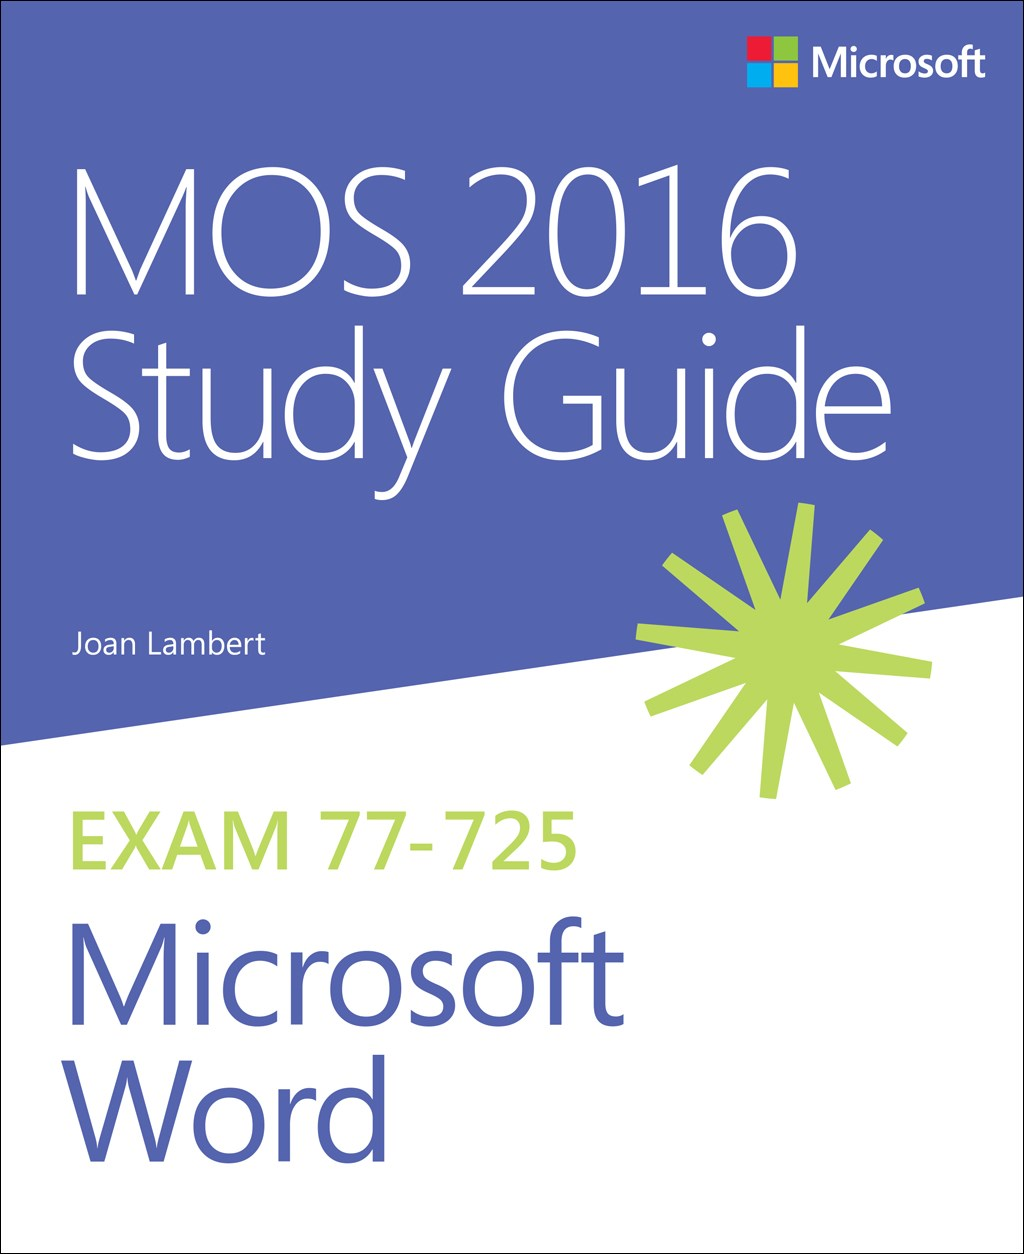 Mos 2016 Study Guide For Microsoft Word Microsoft Press Store